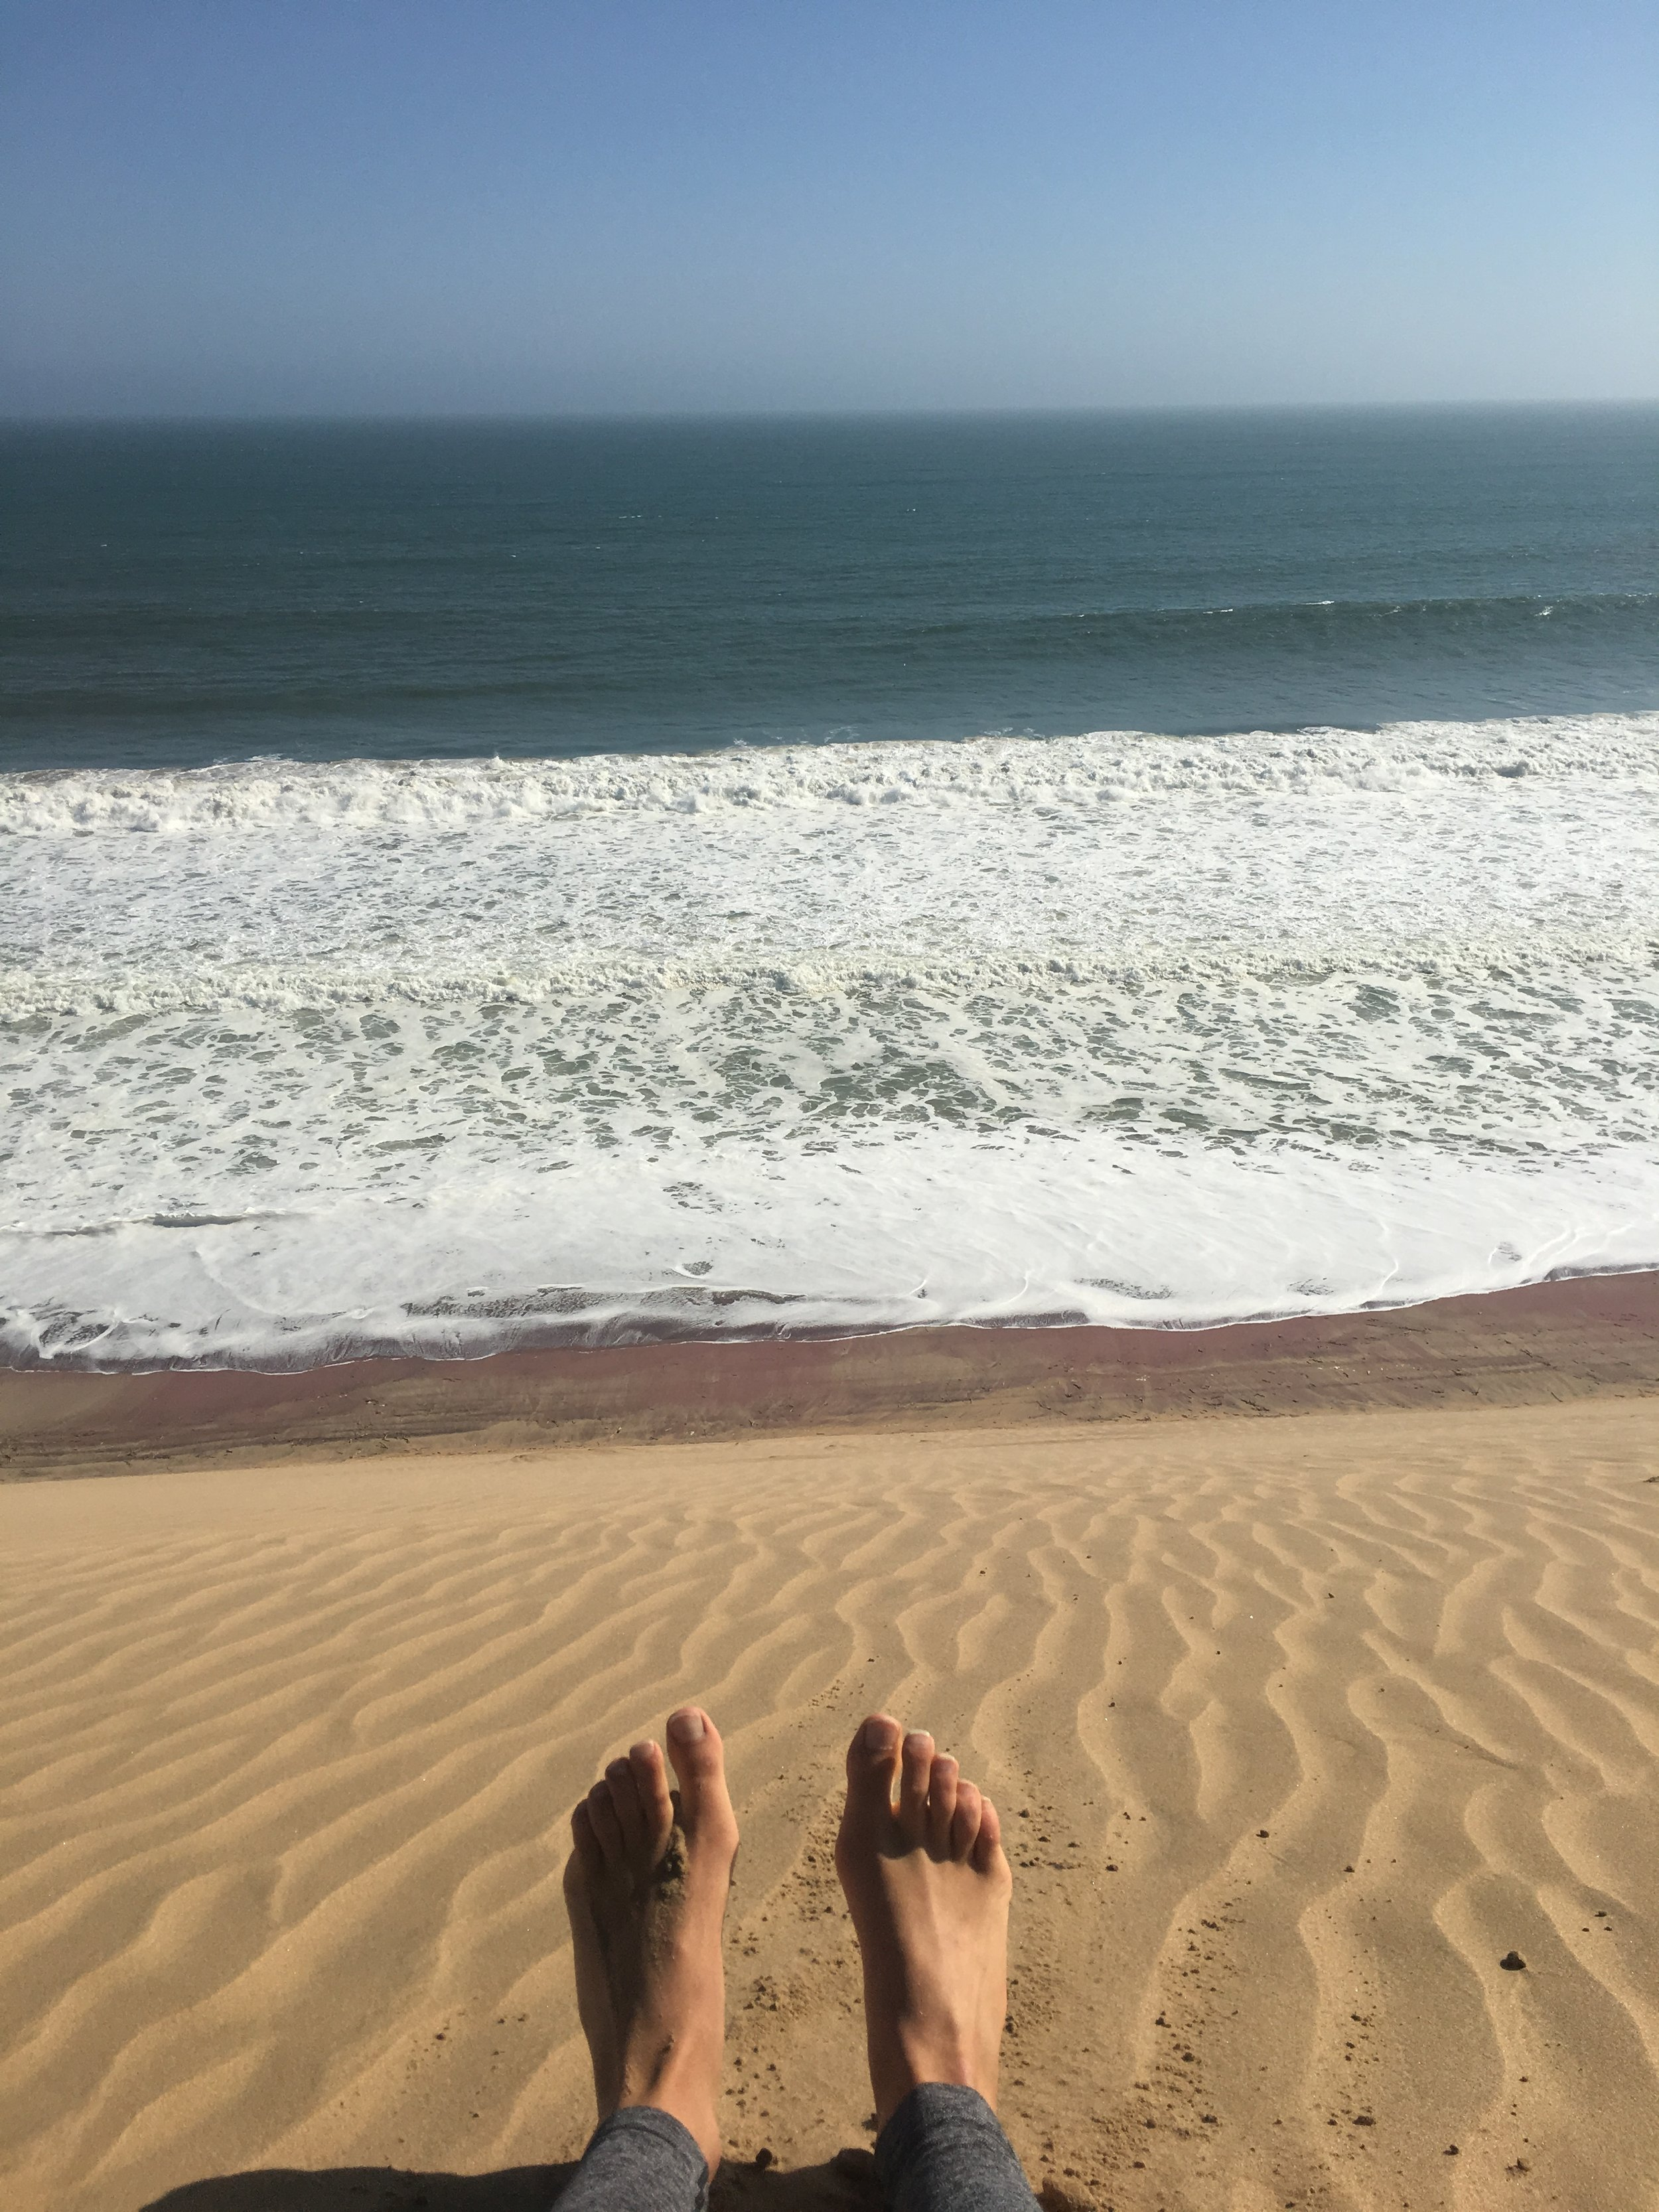 the Ocean is 200m below me...perspectives change drastically in the desert, which is why dune driving can be so dangerous